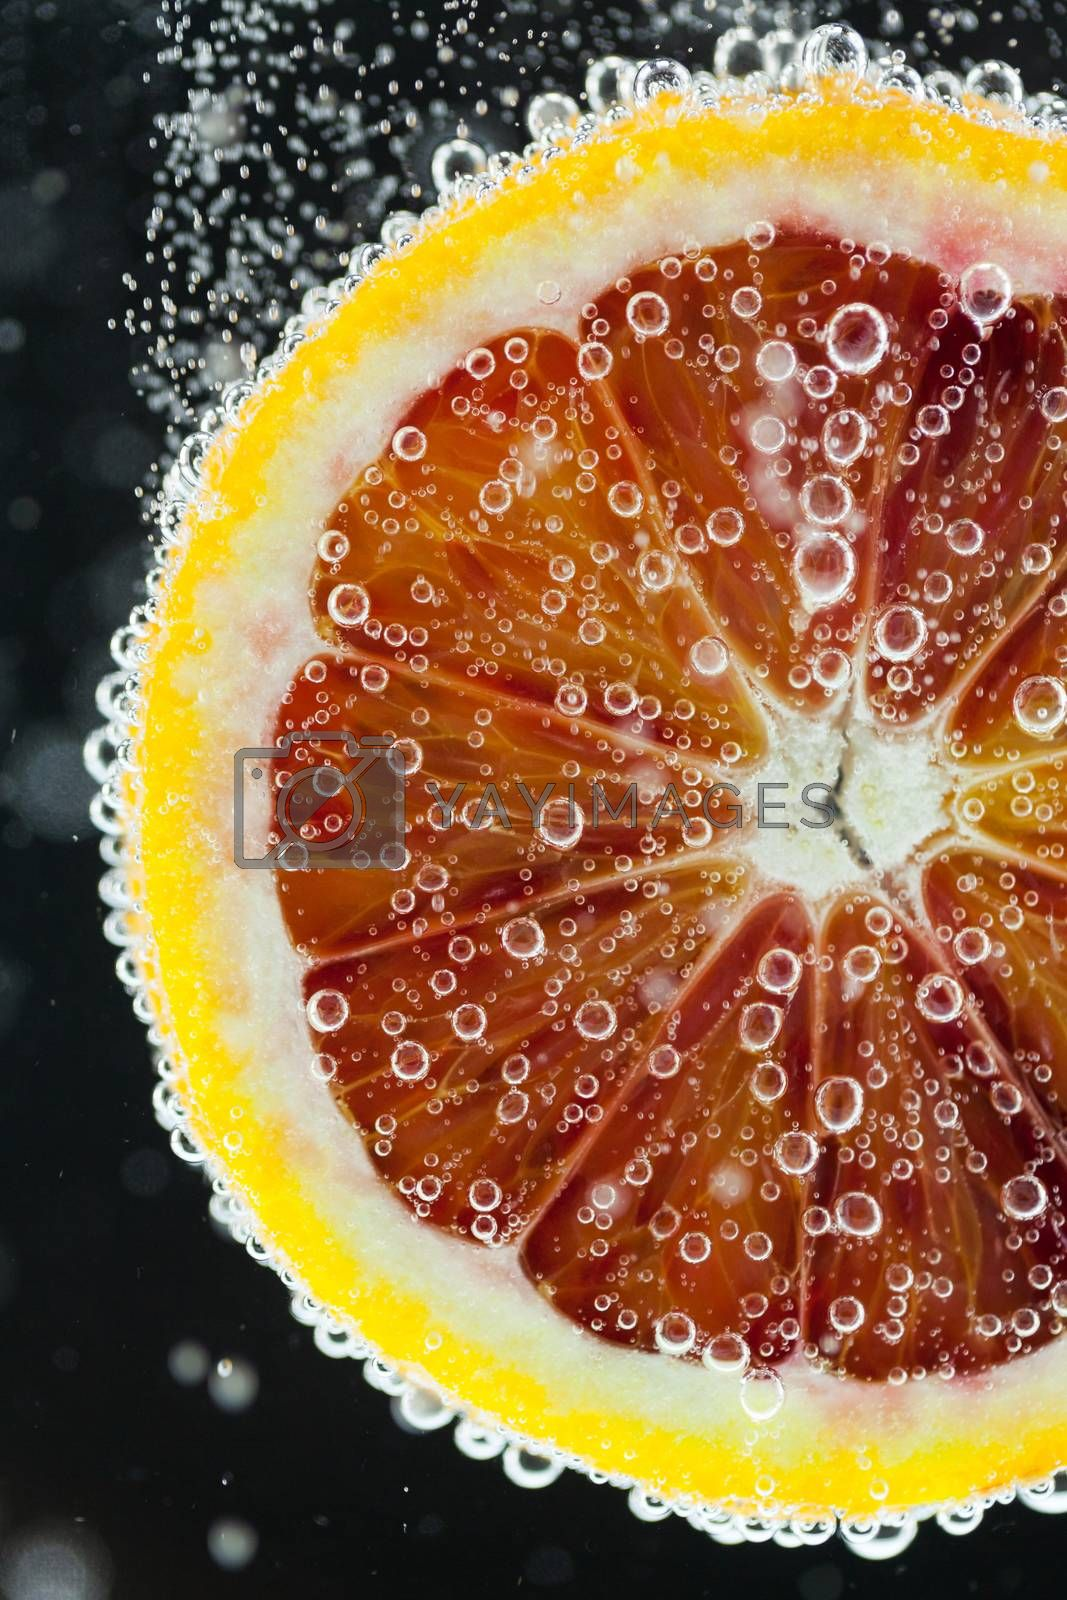 Close-up of blood orange slice diving into carbonated water with bubbles on black background. Refresher drink concept